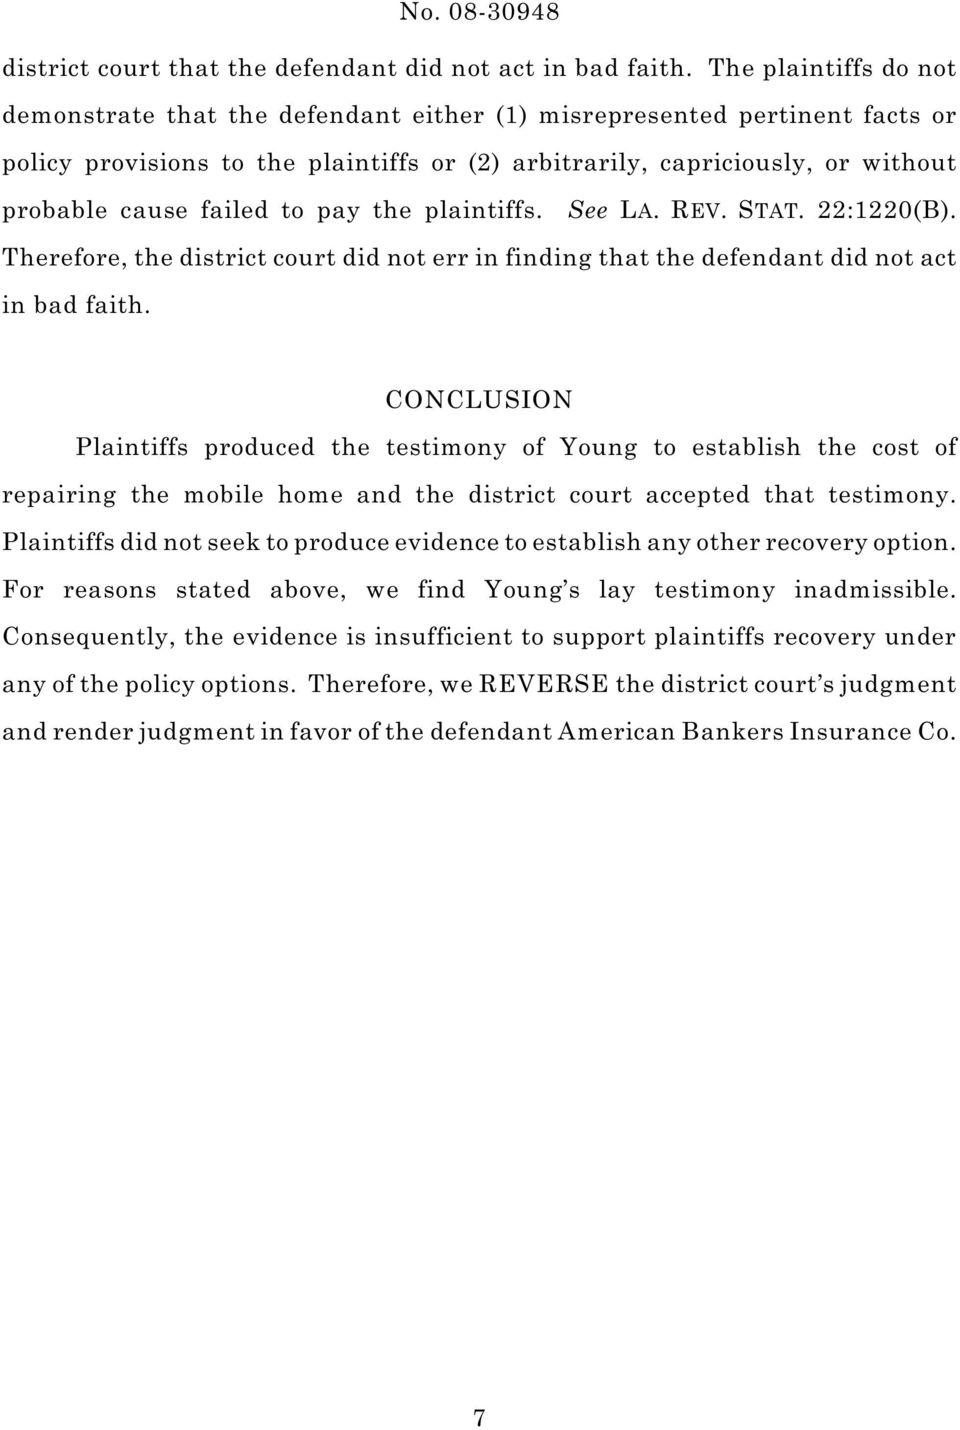 failed to pay the plaintiffs. See LA. REV. STAT. 22:1220(B). Therefore, the district court did not err in finding that the defendant did not act in bad faith.